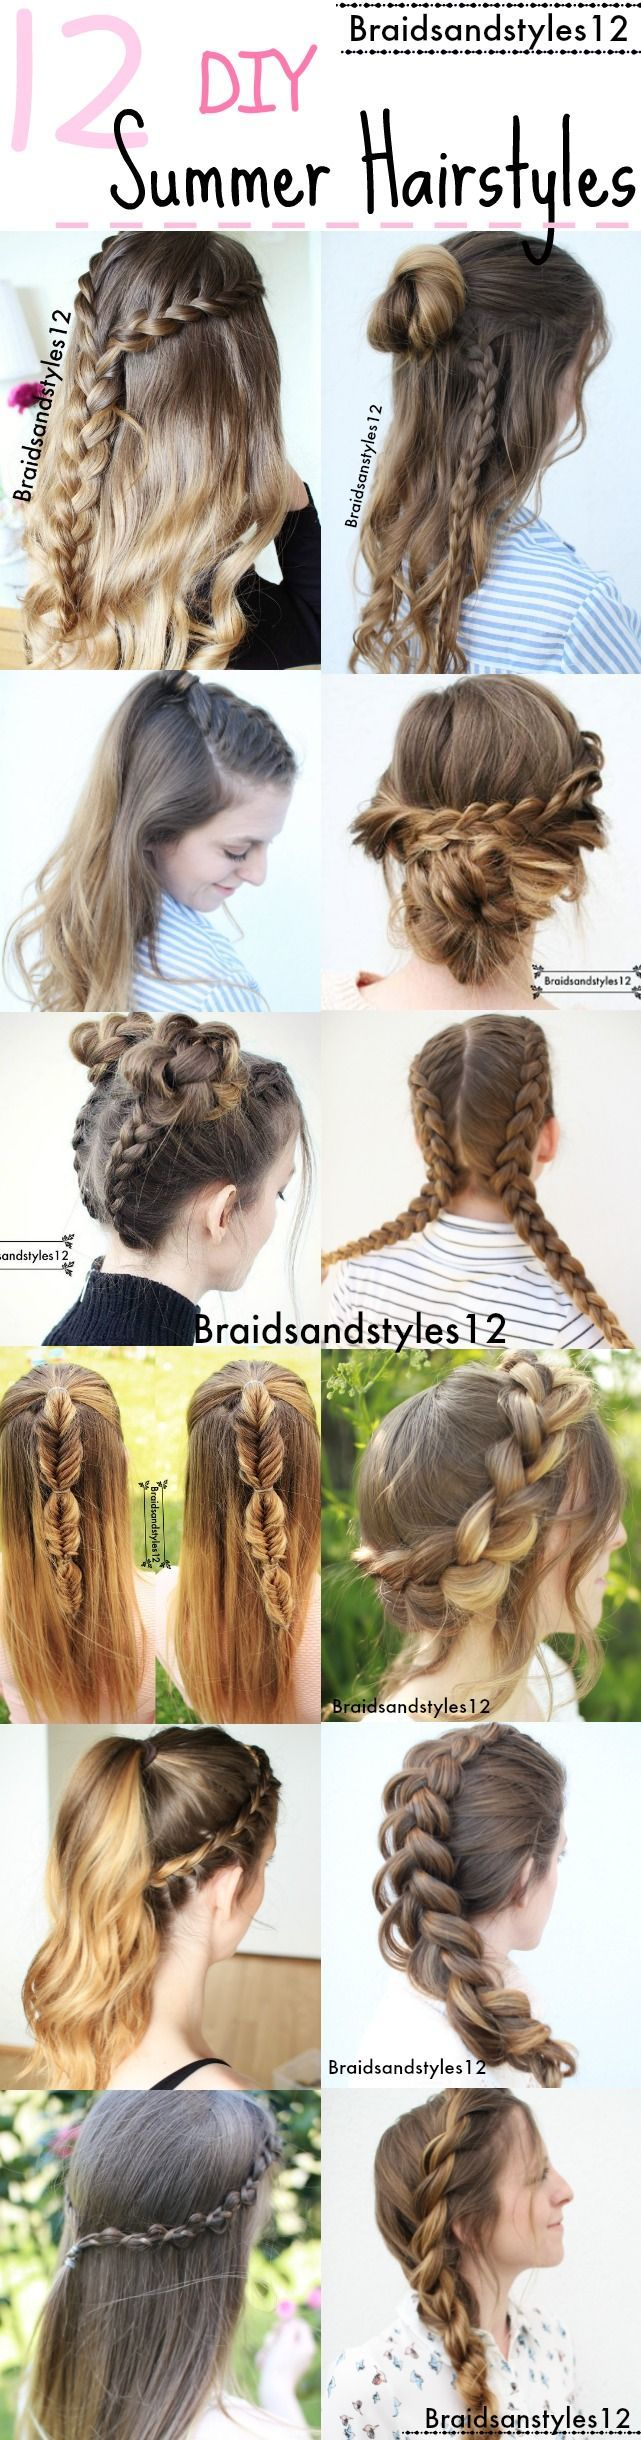 Braidsandstyles12 12 gorgeous diy summer hairstyle ideas by braidsanstyles12 beachy hairstyles by braidsandstyles12 solutioingenieria